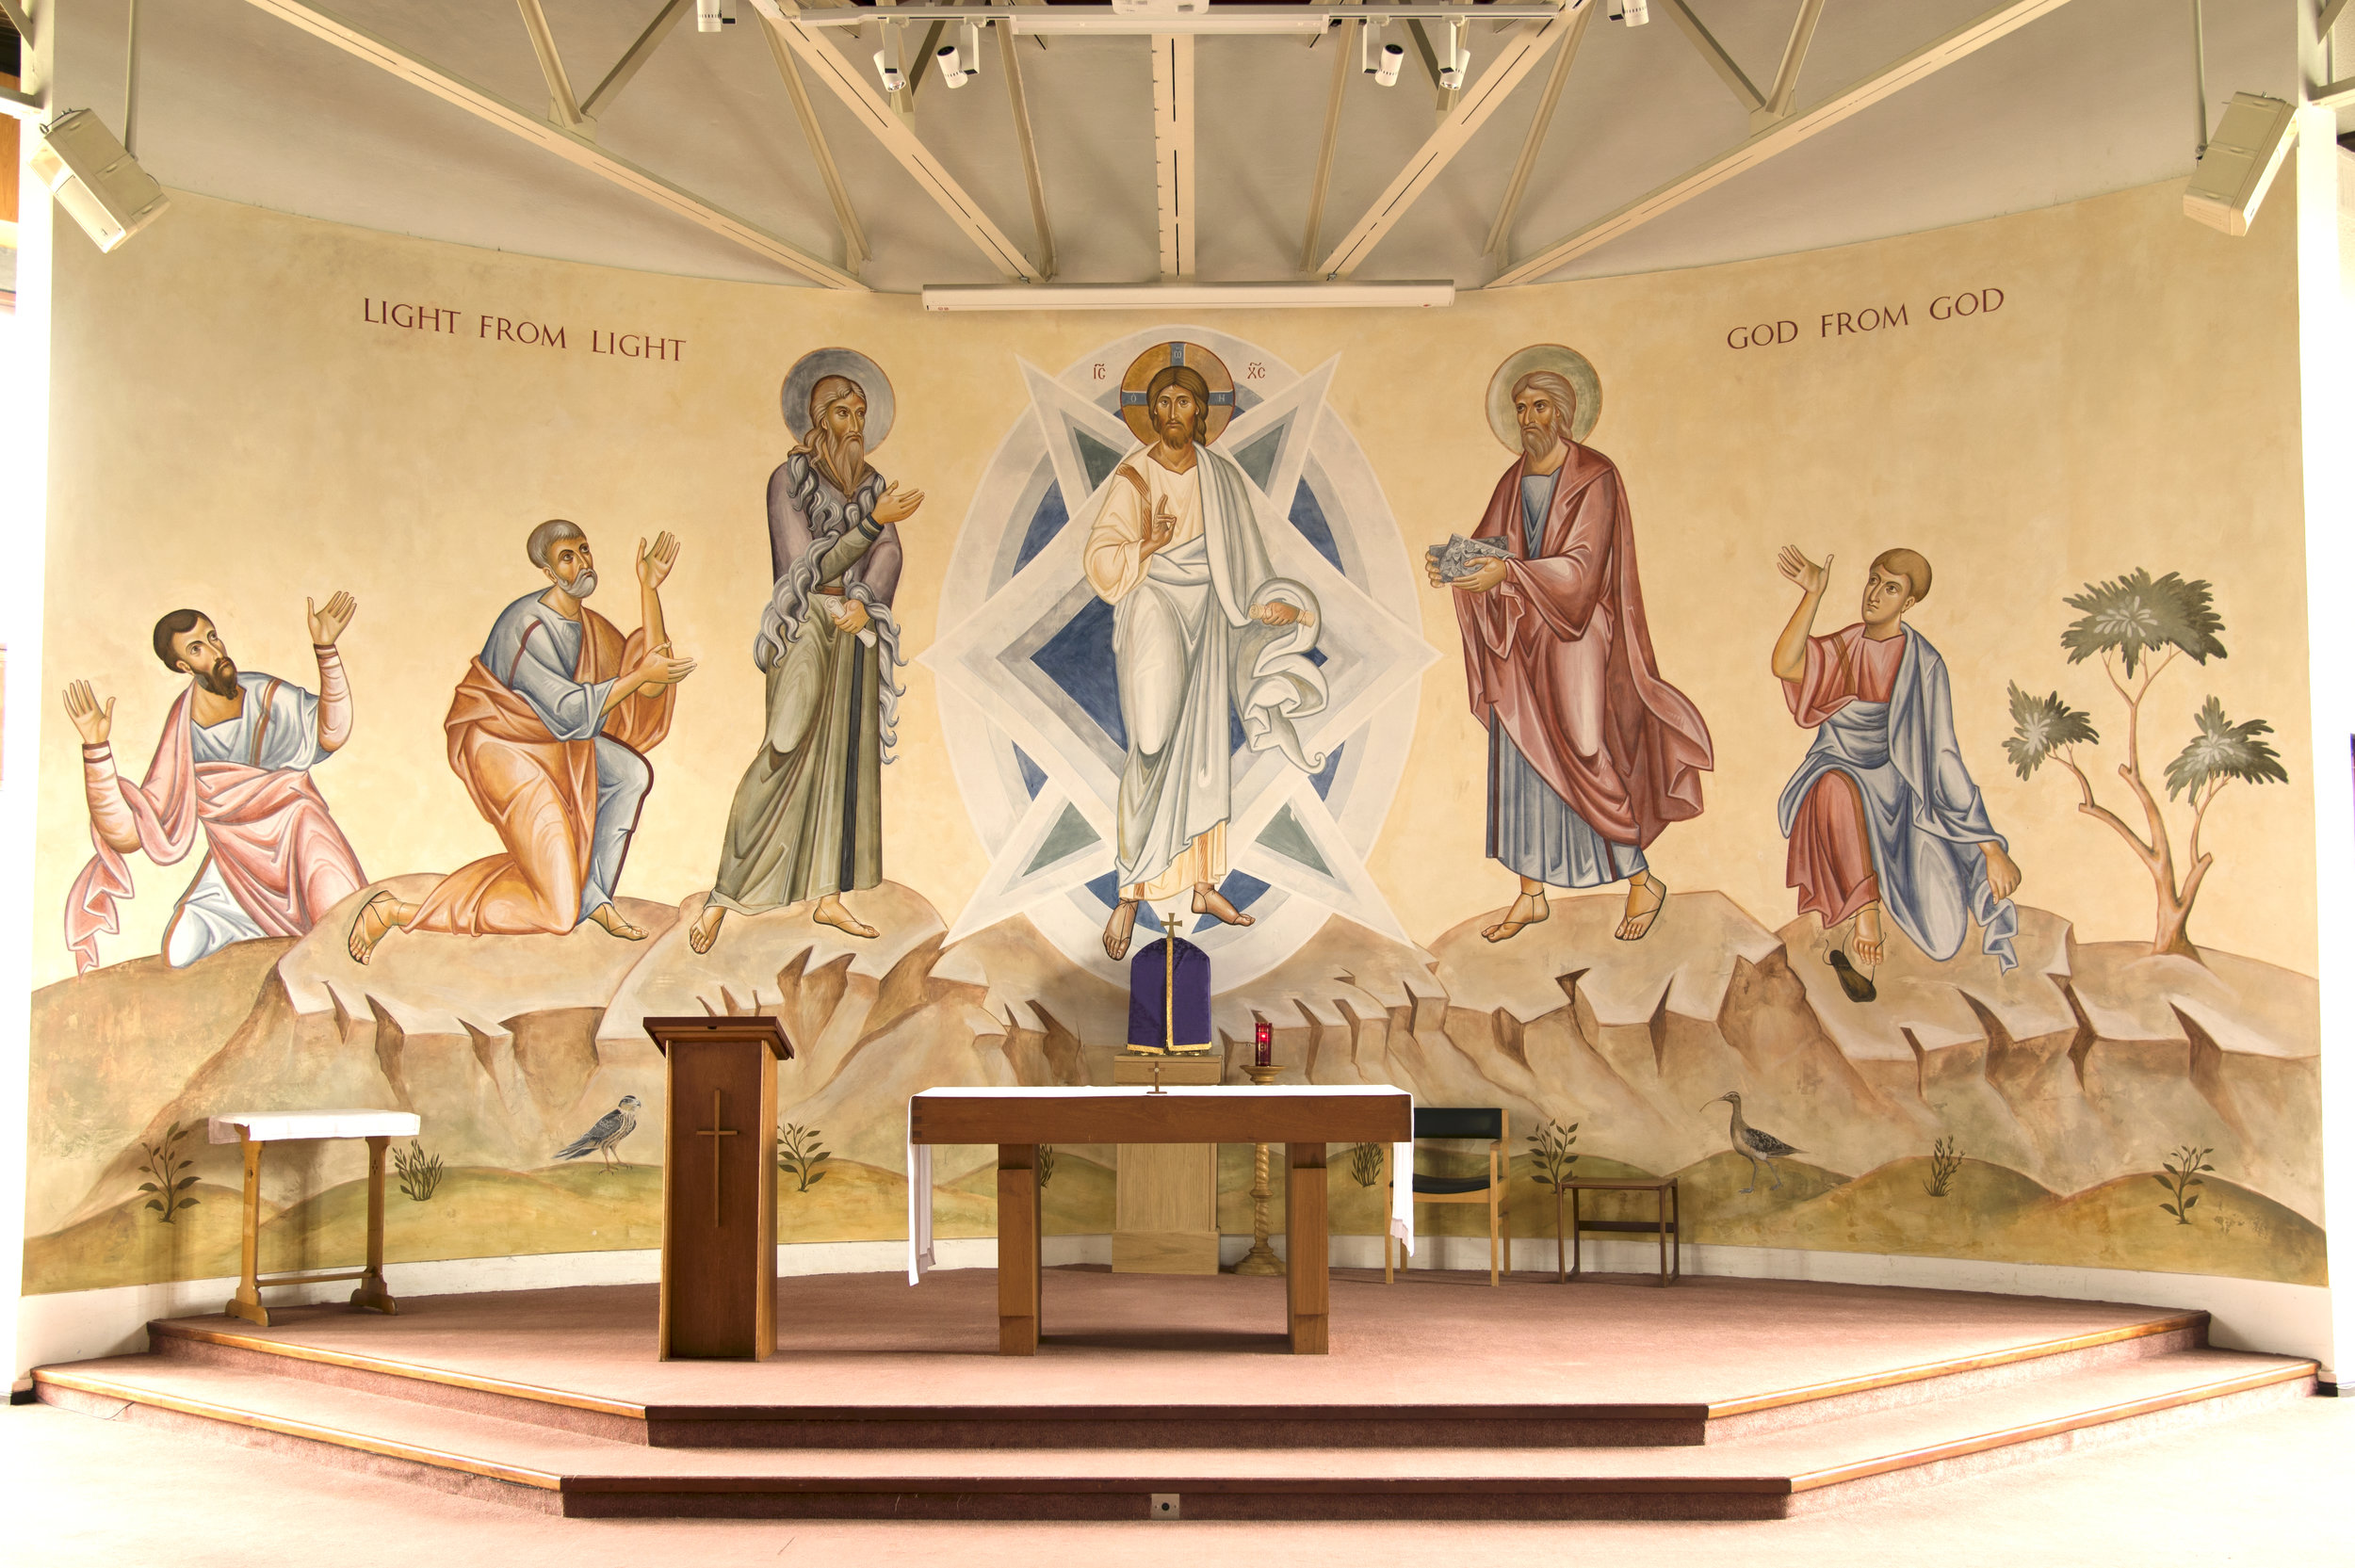 The Transfiguration Secco Icon at the Catholic Chaplaincy, Lancaster University, completed in 2017.